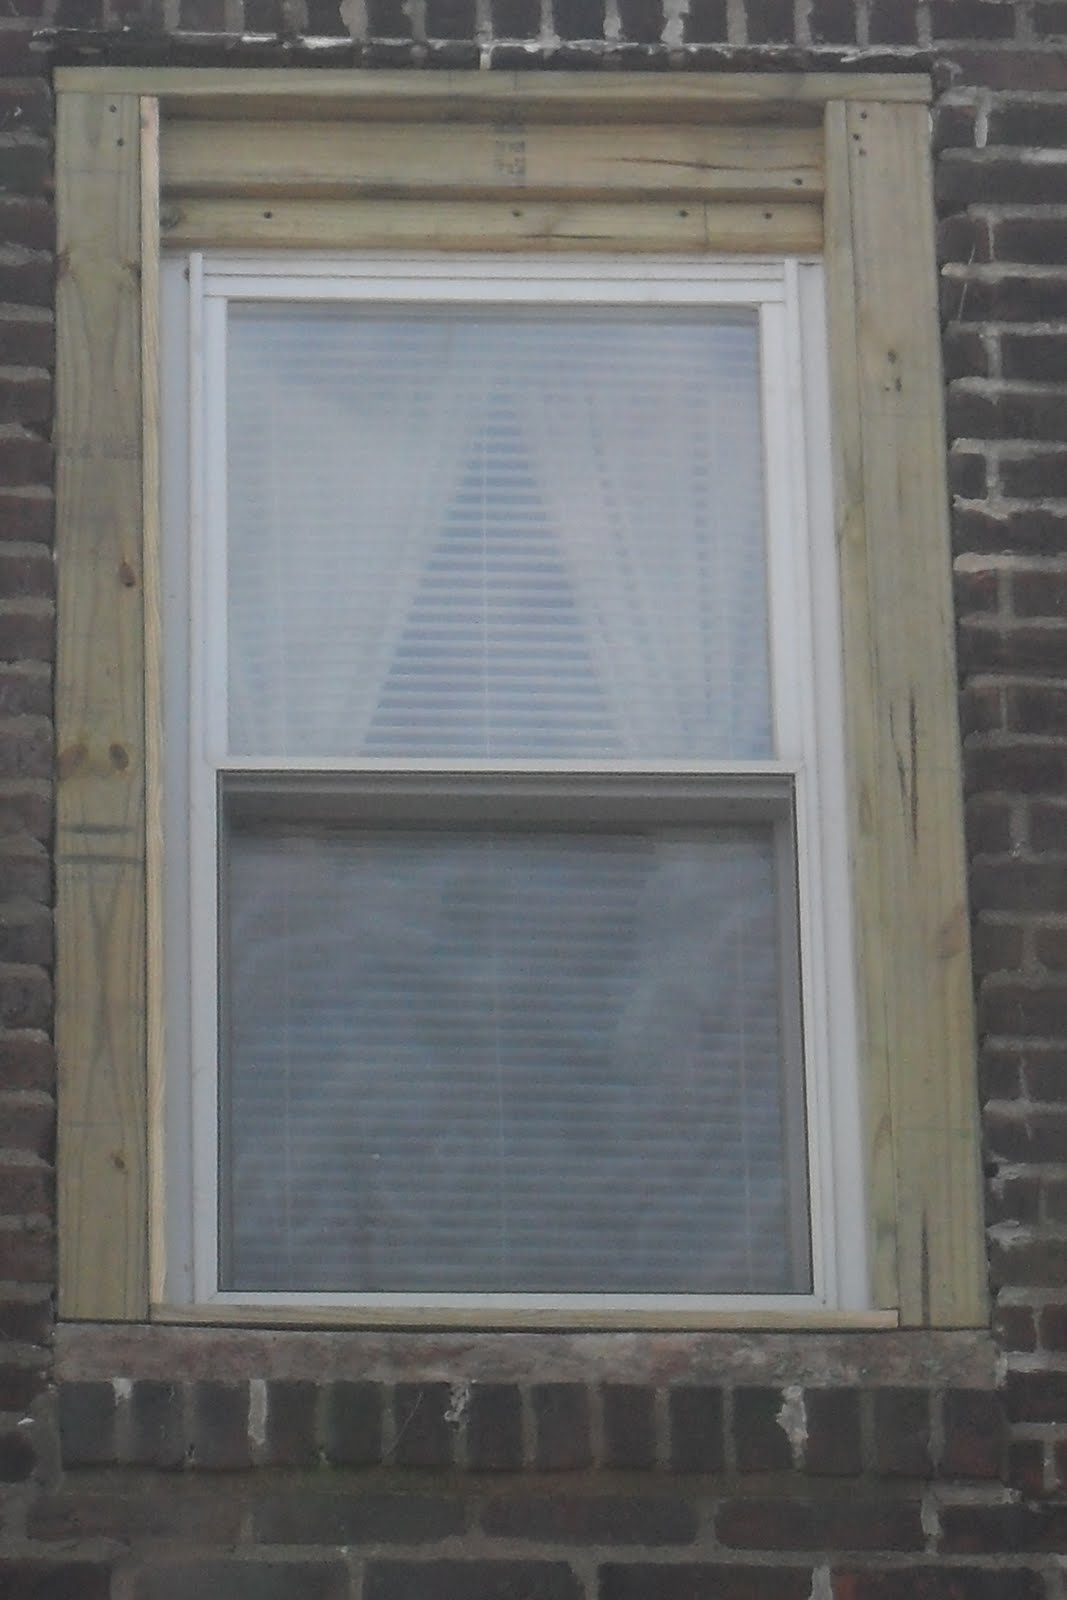 V-Square Improvements: Replace rotted window frame and cap